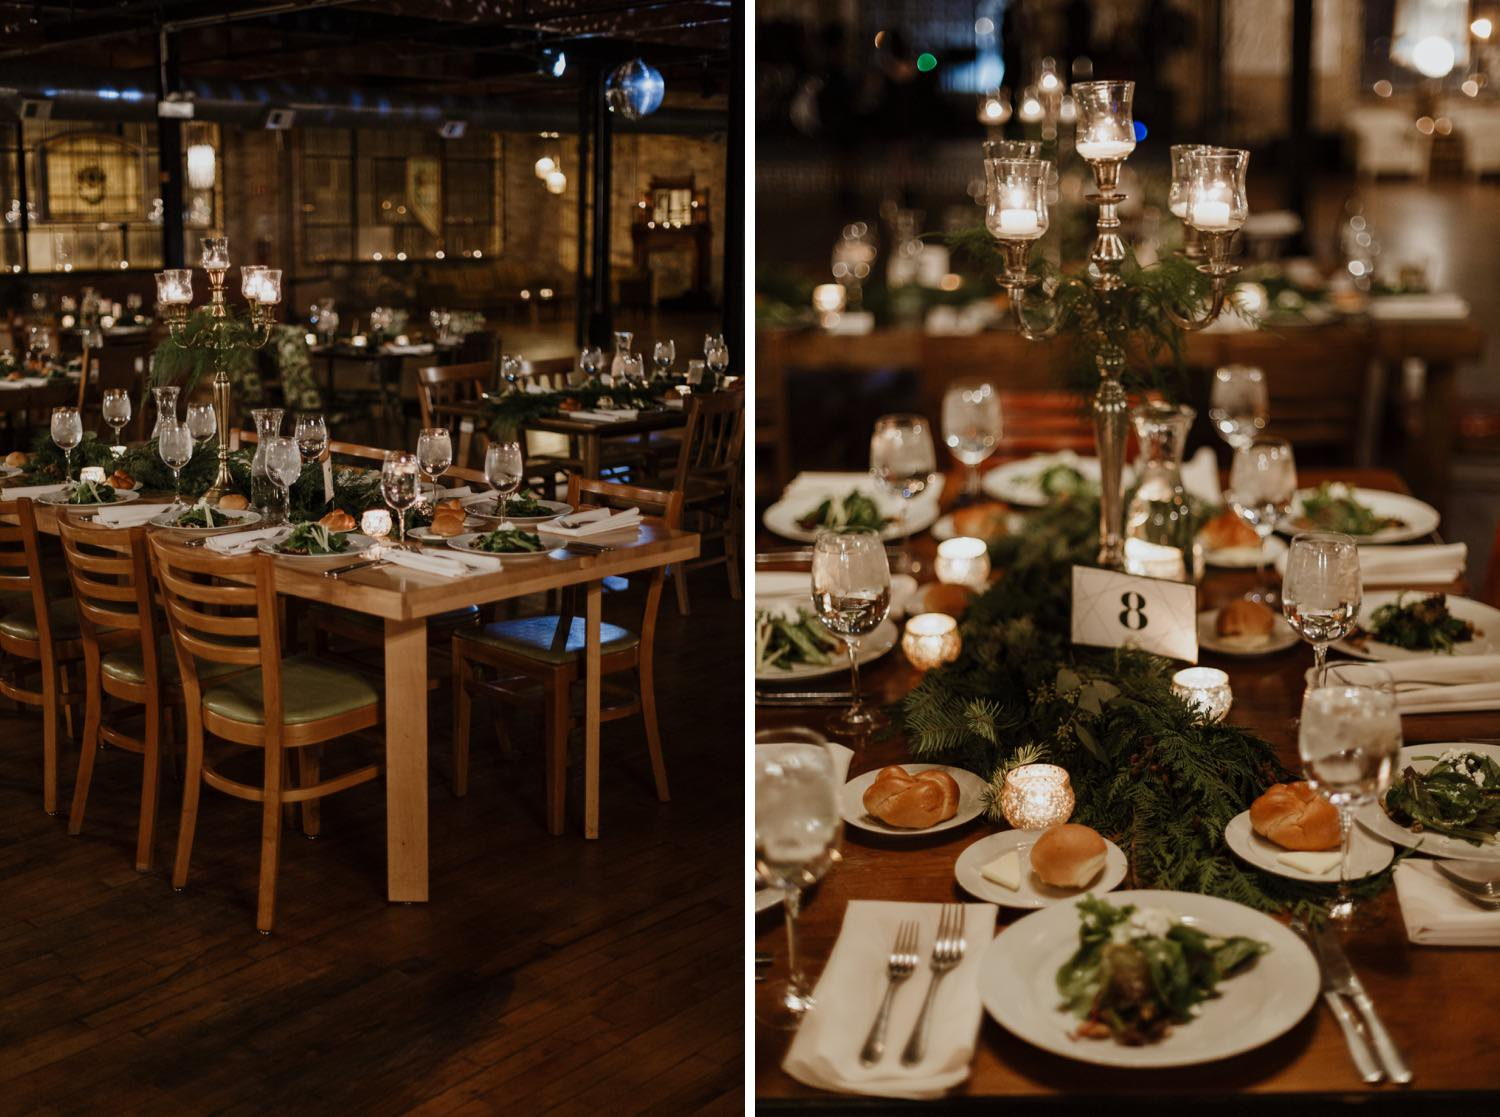 Pictures of table decorations with a winter wedding theme at the salvage one